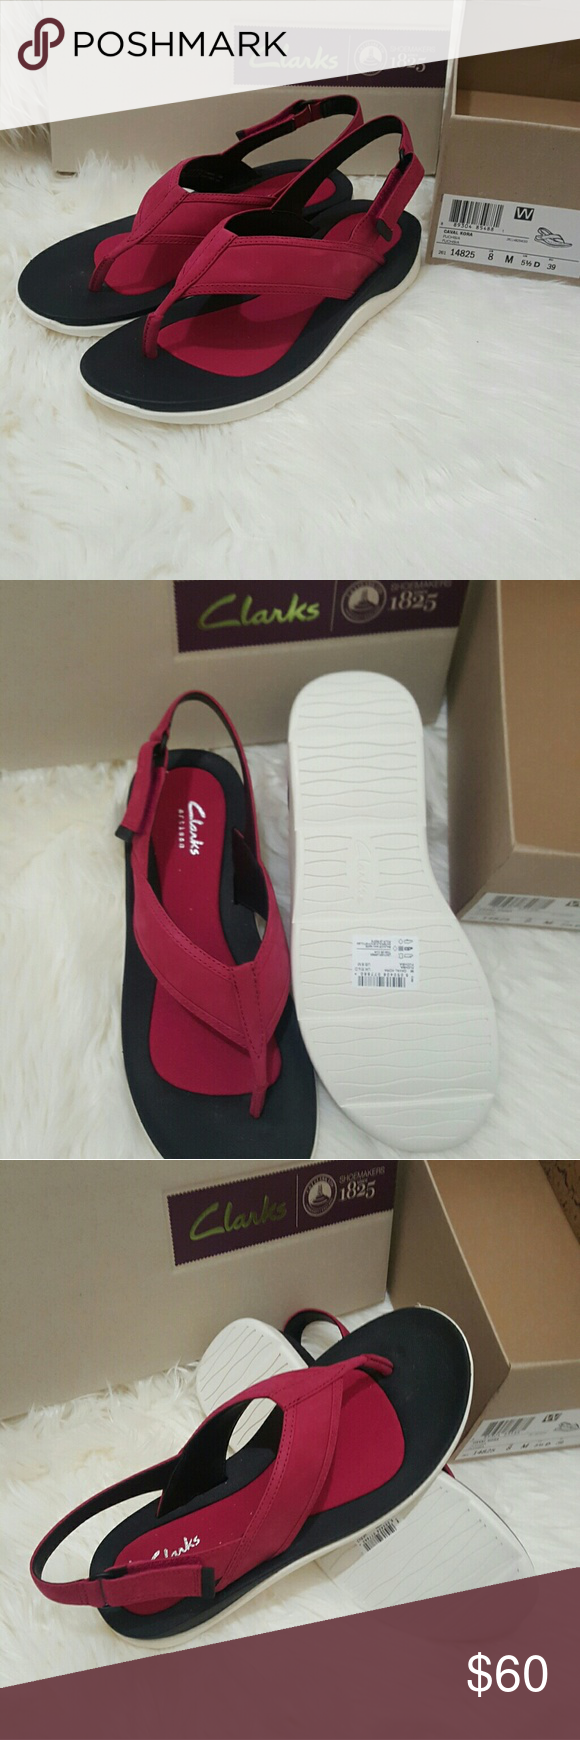 NIB * Clark's Ultra Comfort Strap Sandals* NIB * Clark's Ultra Comfort Strap Sandals * Fuschia Color* Size 8* Amazing comfort* Feel free to Inquire and ask Questions * Reasonable offers accepted * Bundle & Save * Clarks Shoes